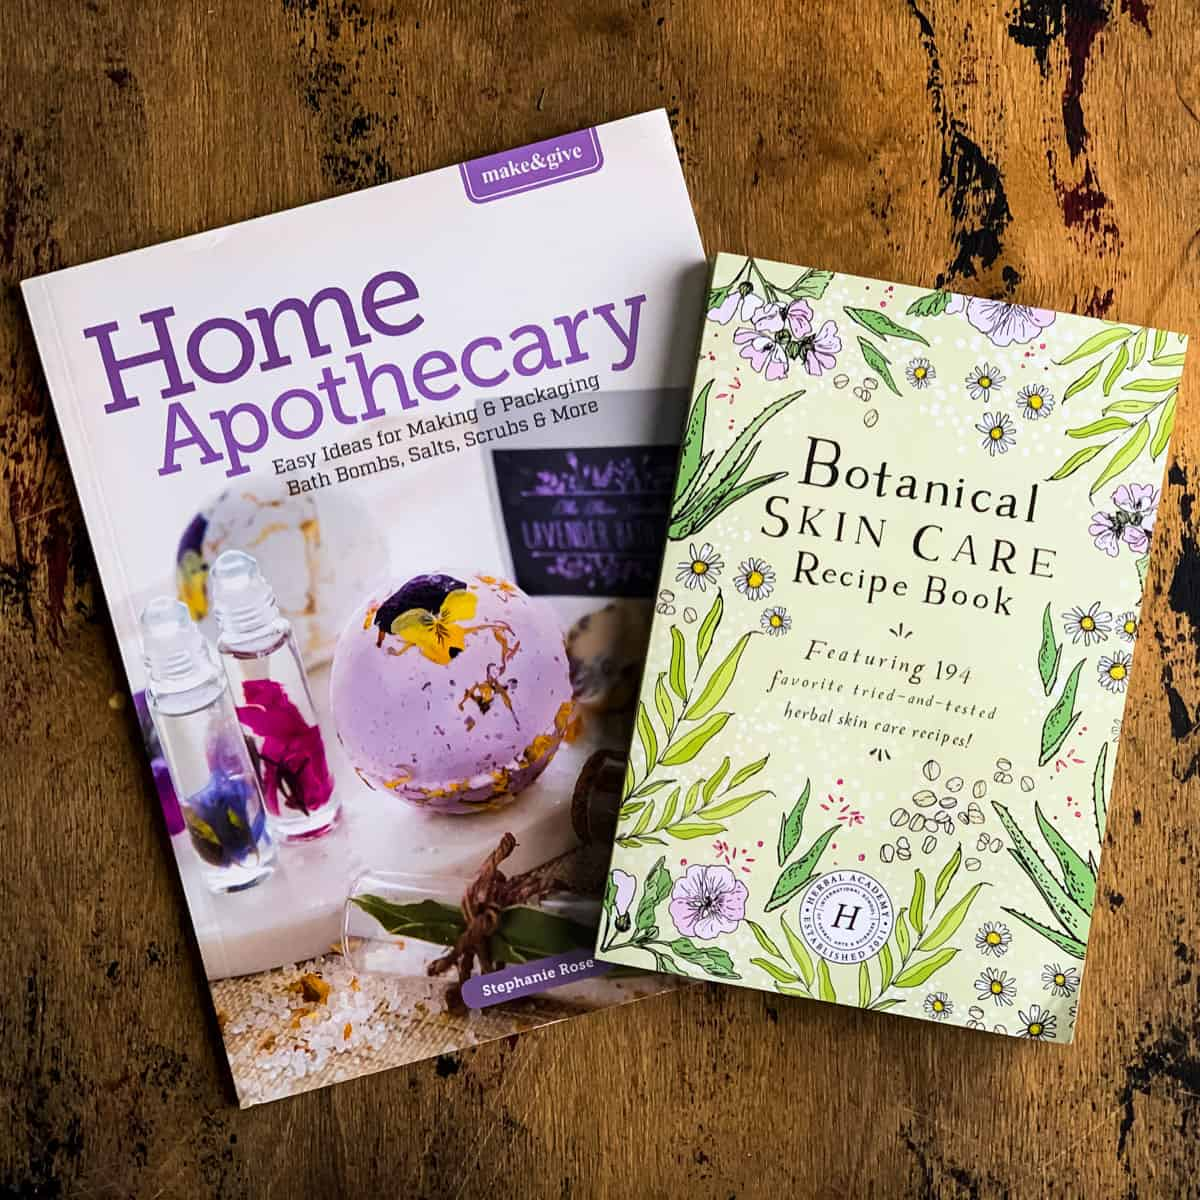 make and give home apothecary and botanical skin care recipe book